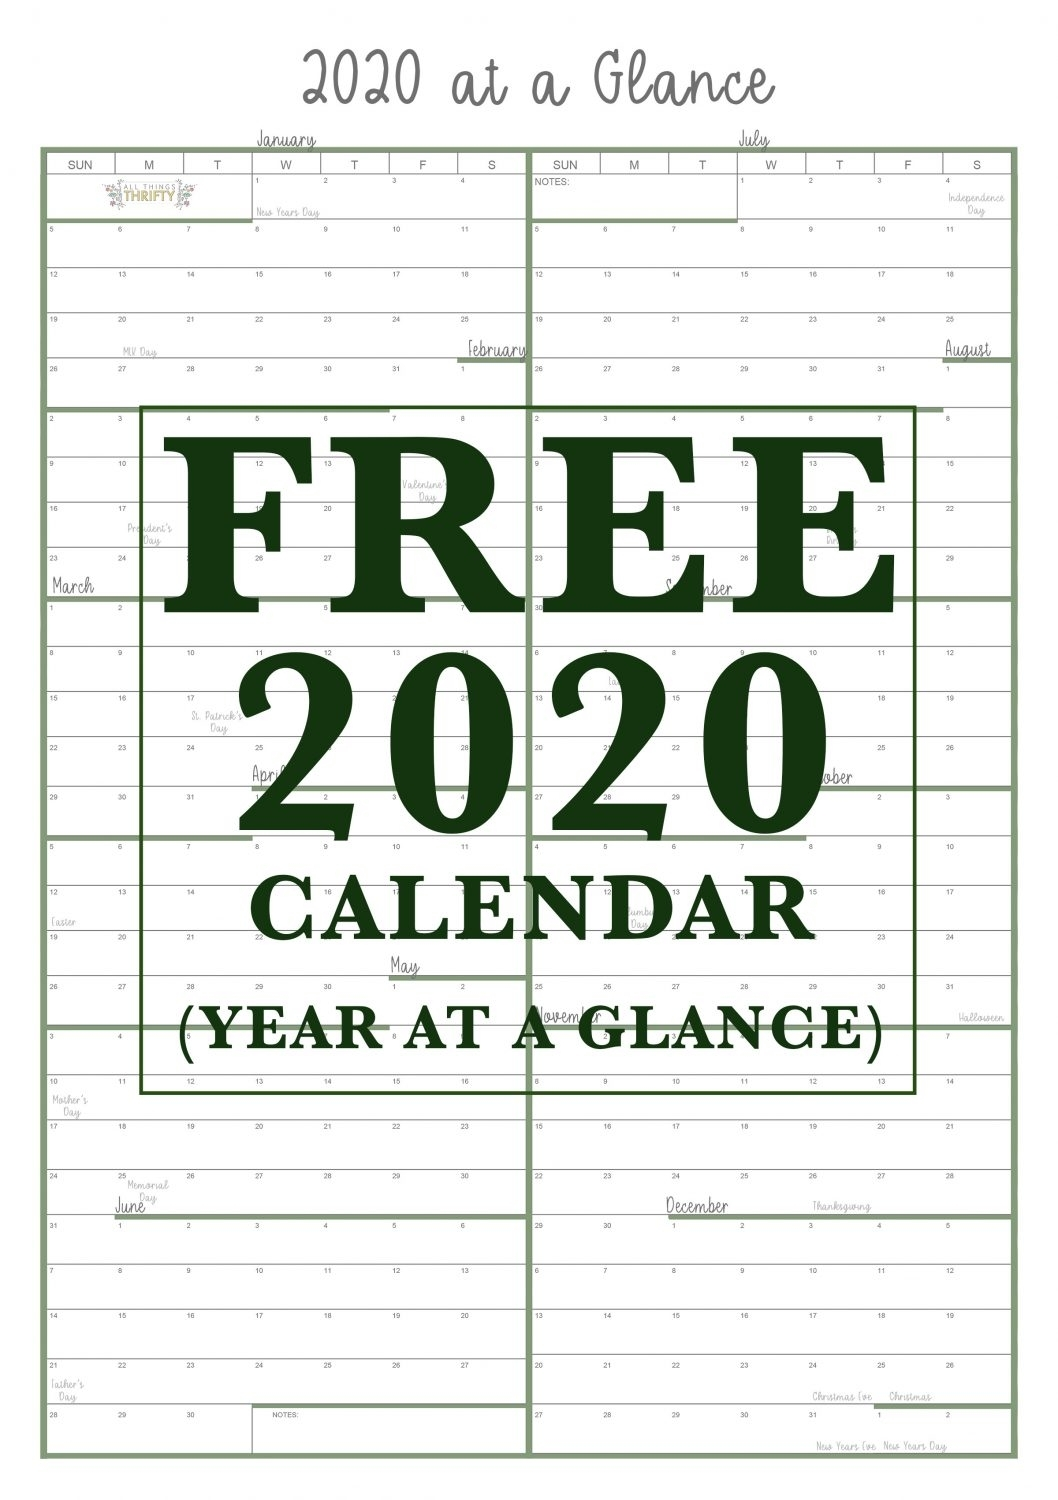 Year At A Glance Free Printable Calendar | All Things Thrifty pertaining to Free 2020 Year At A Glance Calendars